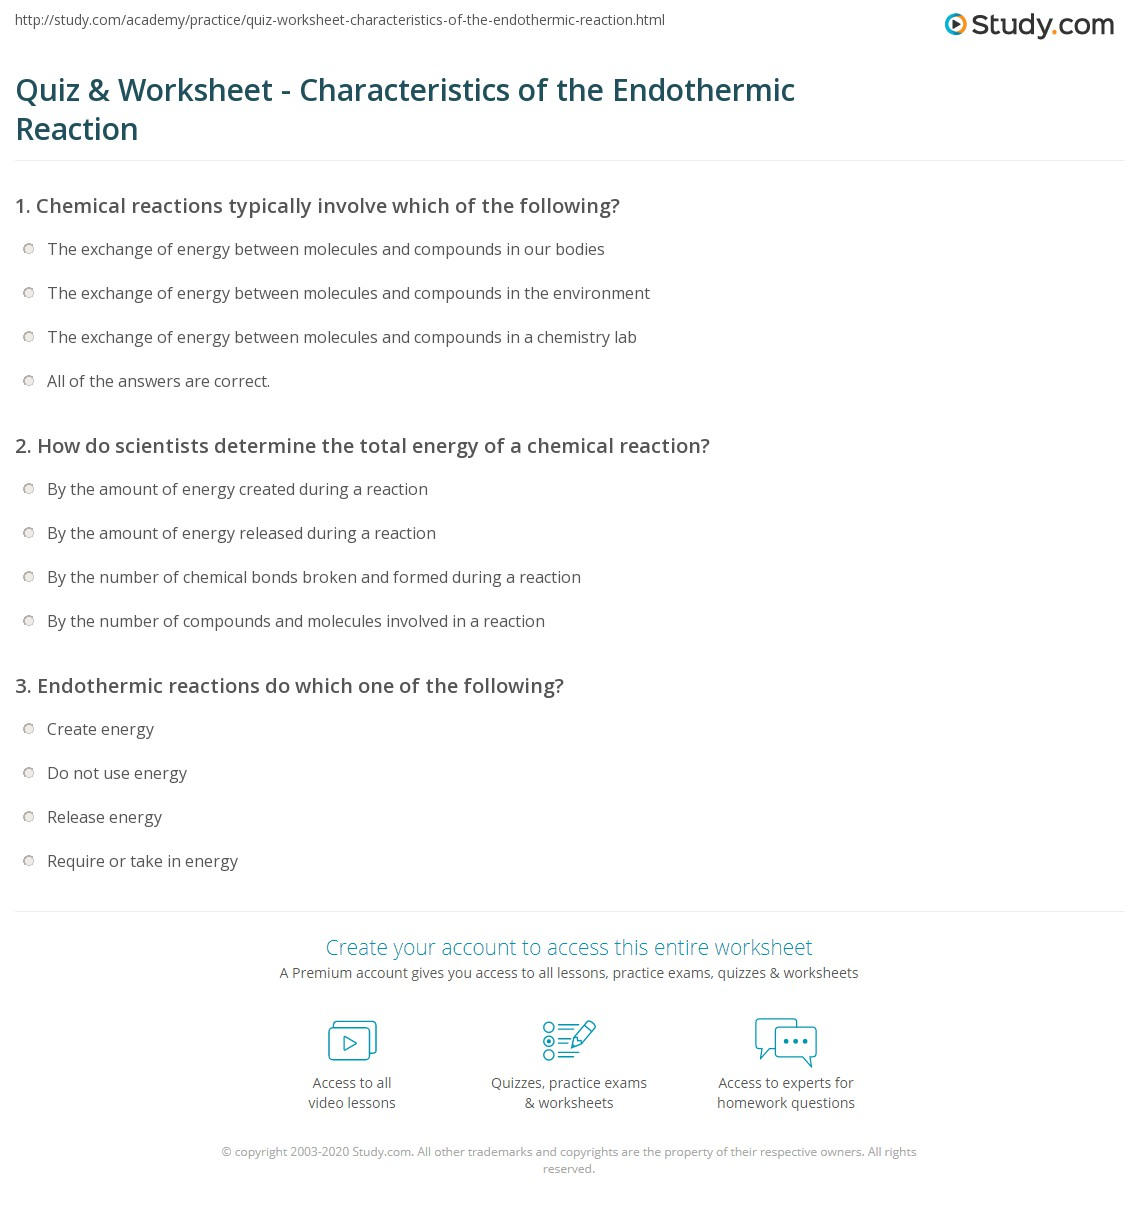 Quiz Worksheet Characteristics Of The Endothermic Reaction